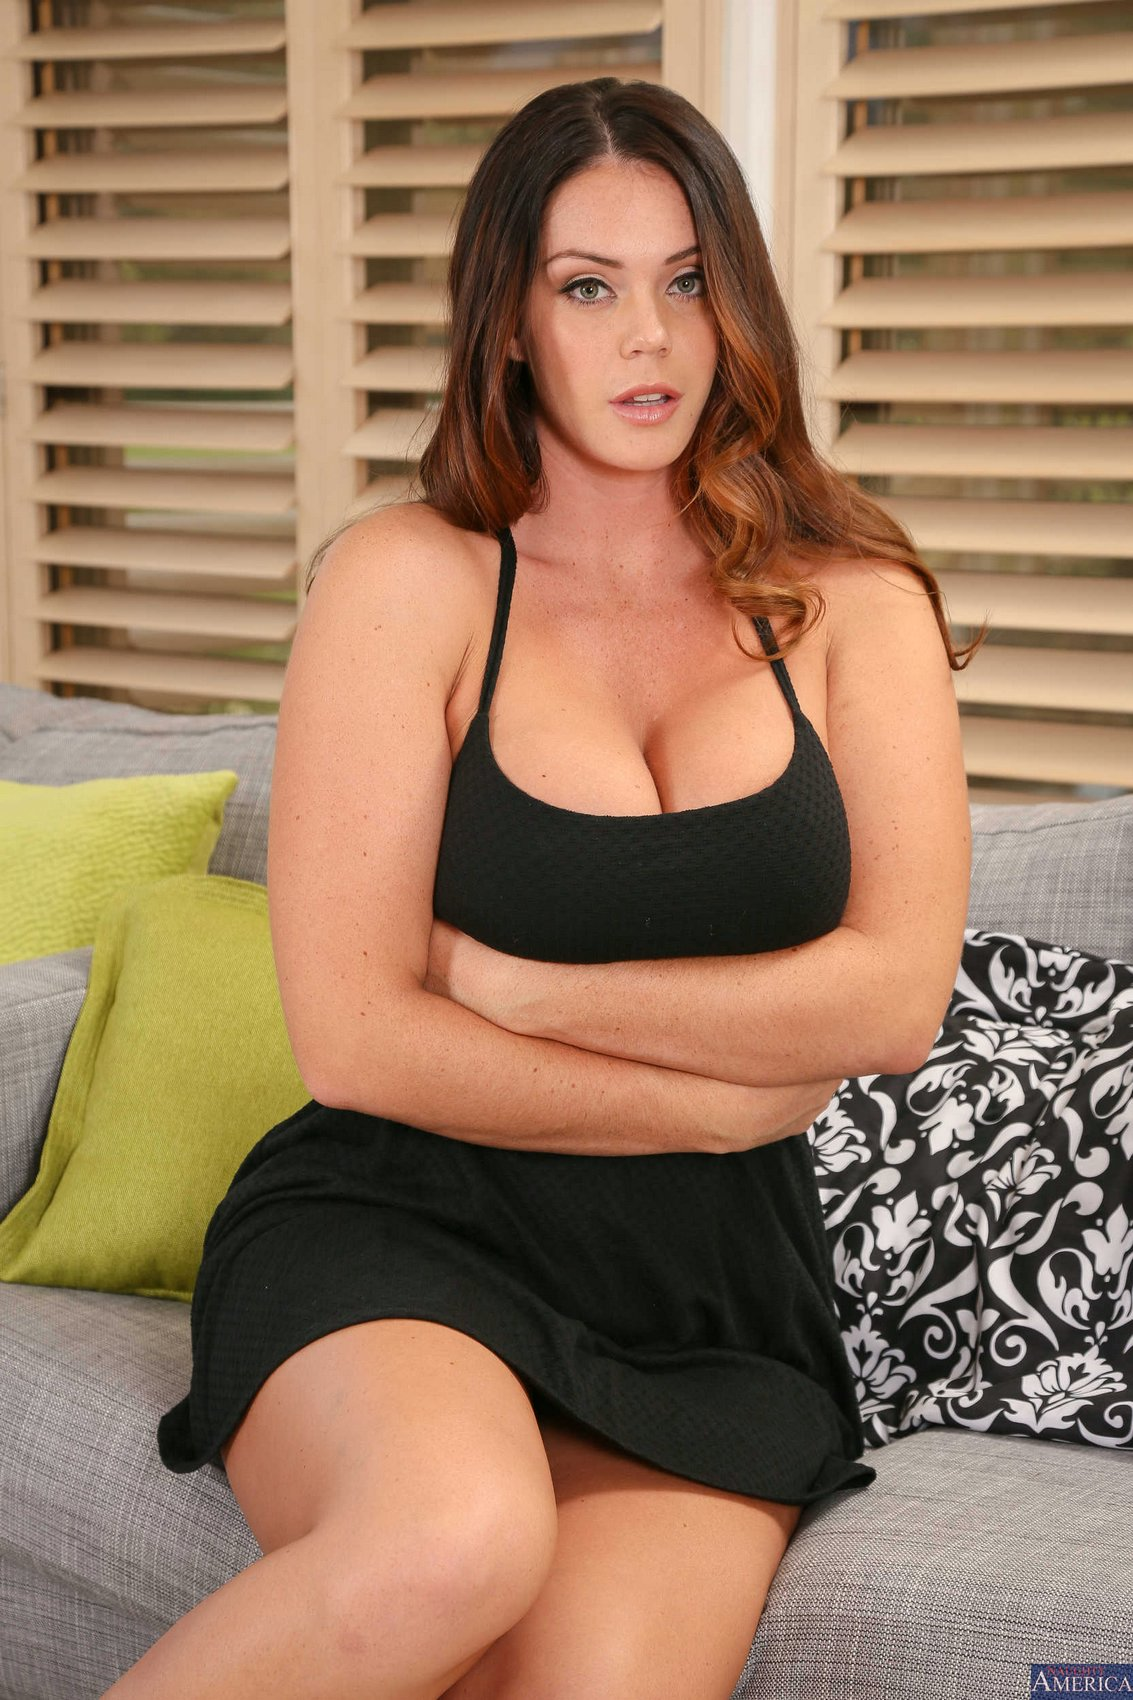 Housewives alison tyler and jada stevens sharing dick in pov - 1 part 1